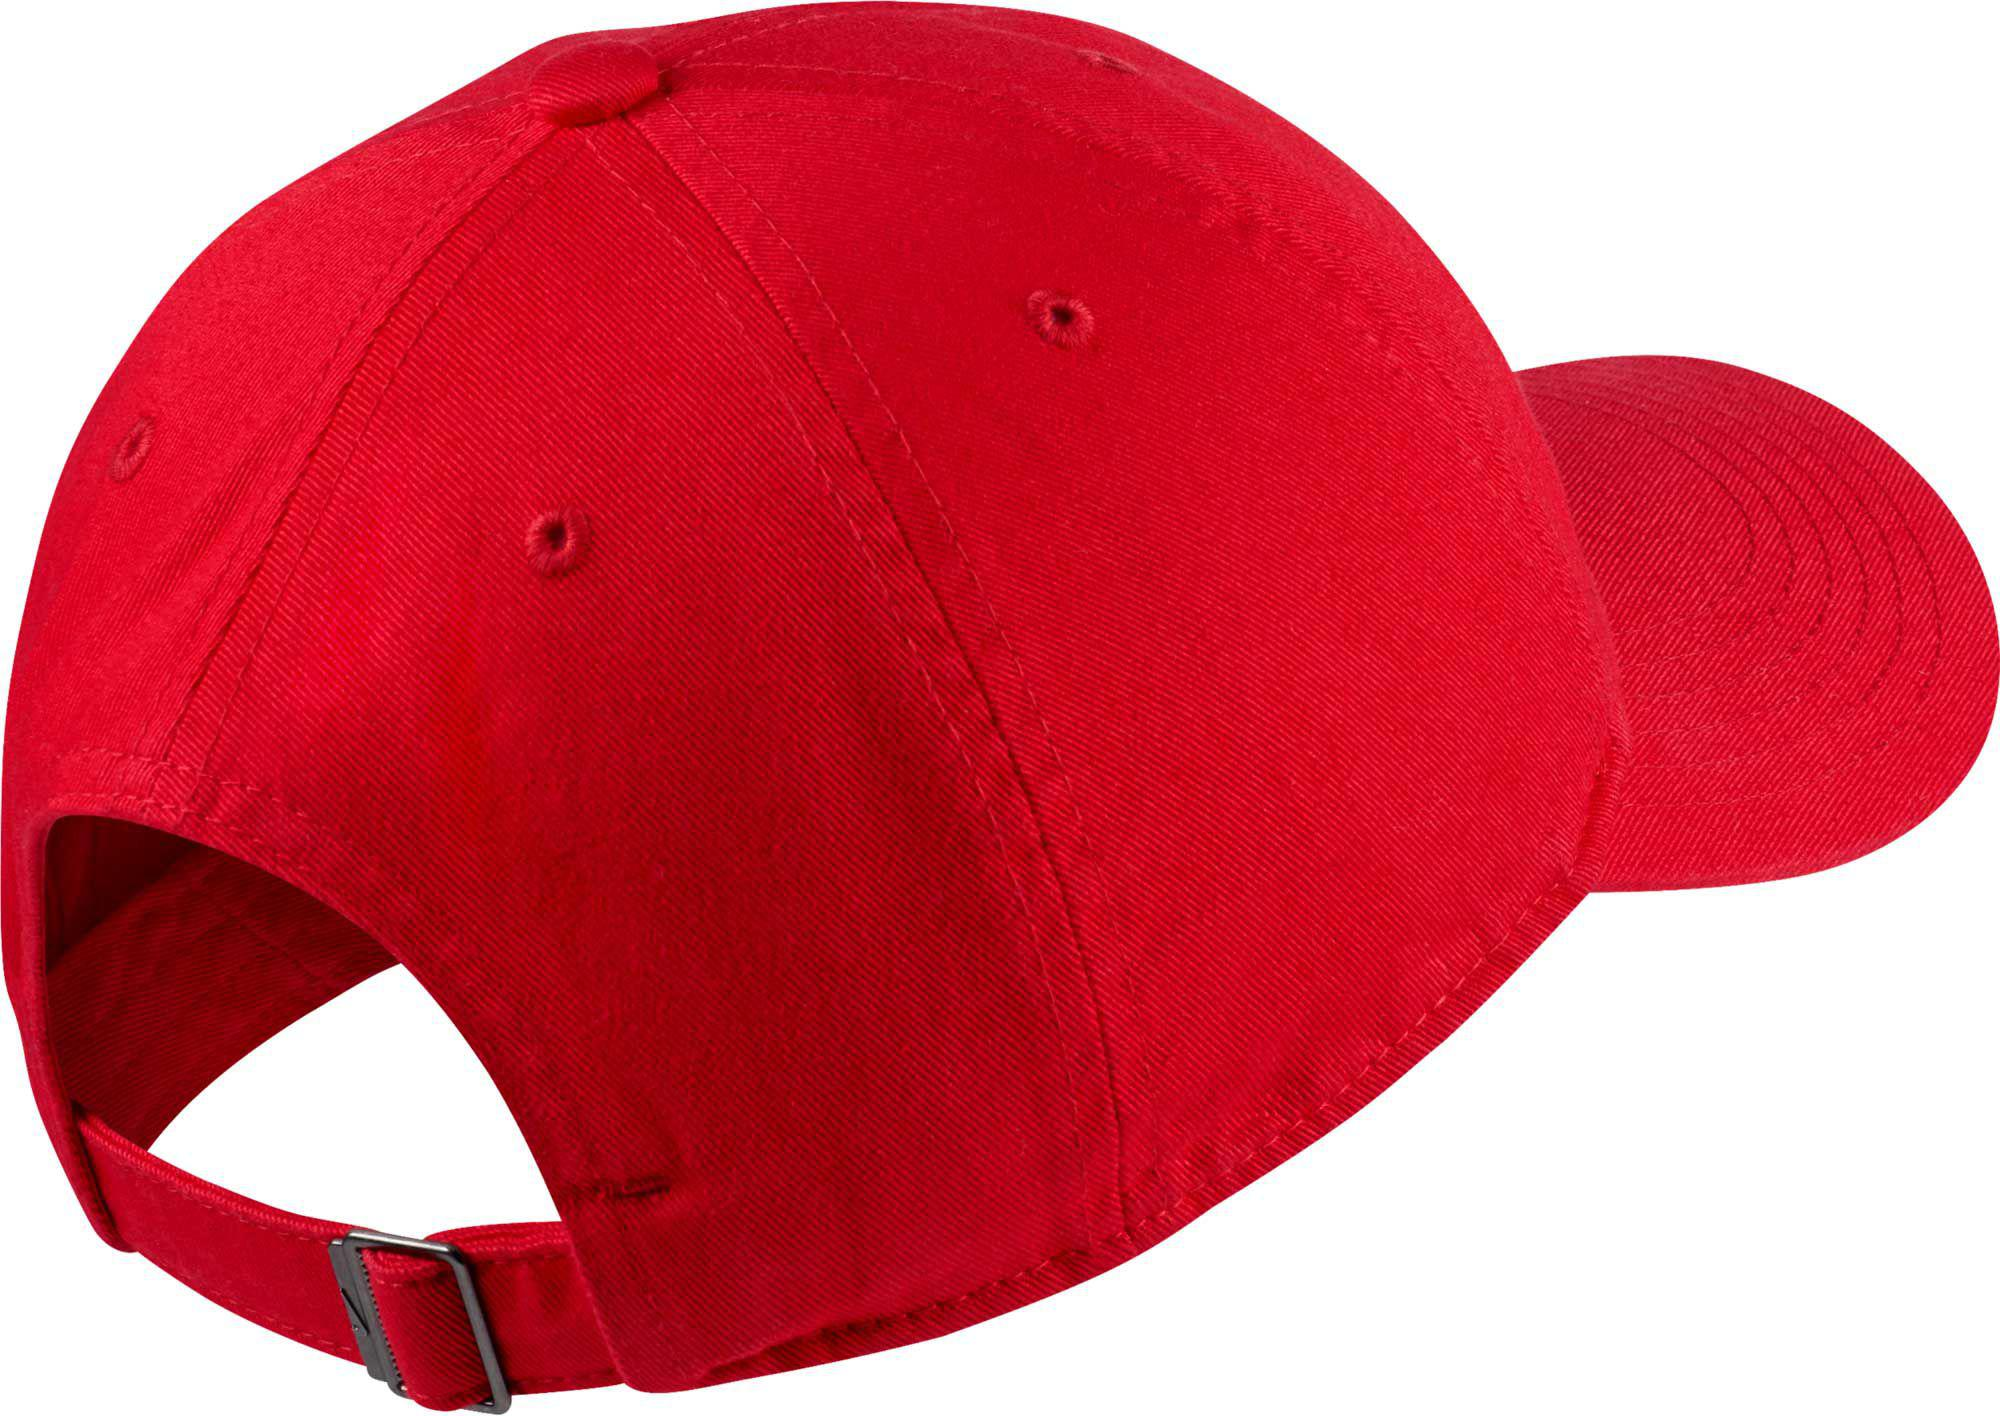 970ee01294018 Nike - Red Oys  Heritage86 Futura Adjustable Hat for Men - Lyst. View  fullscreen